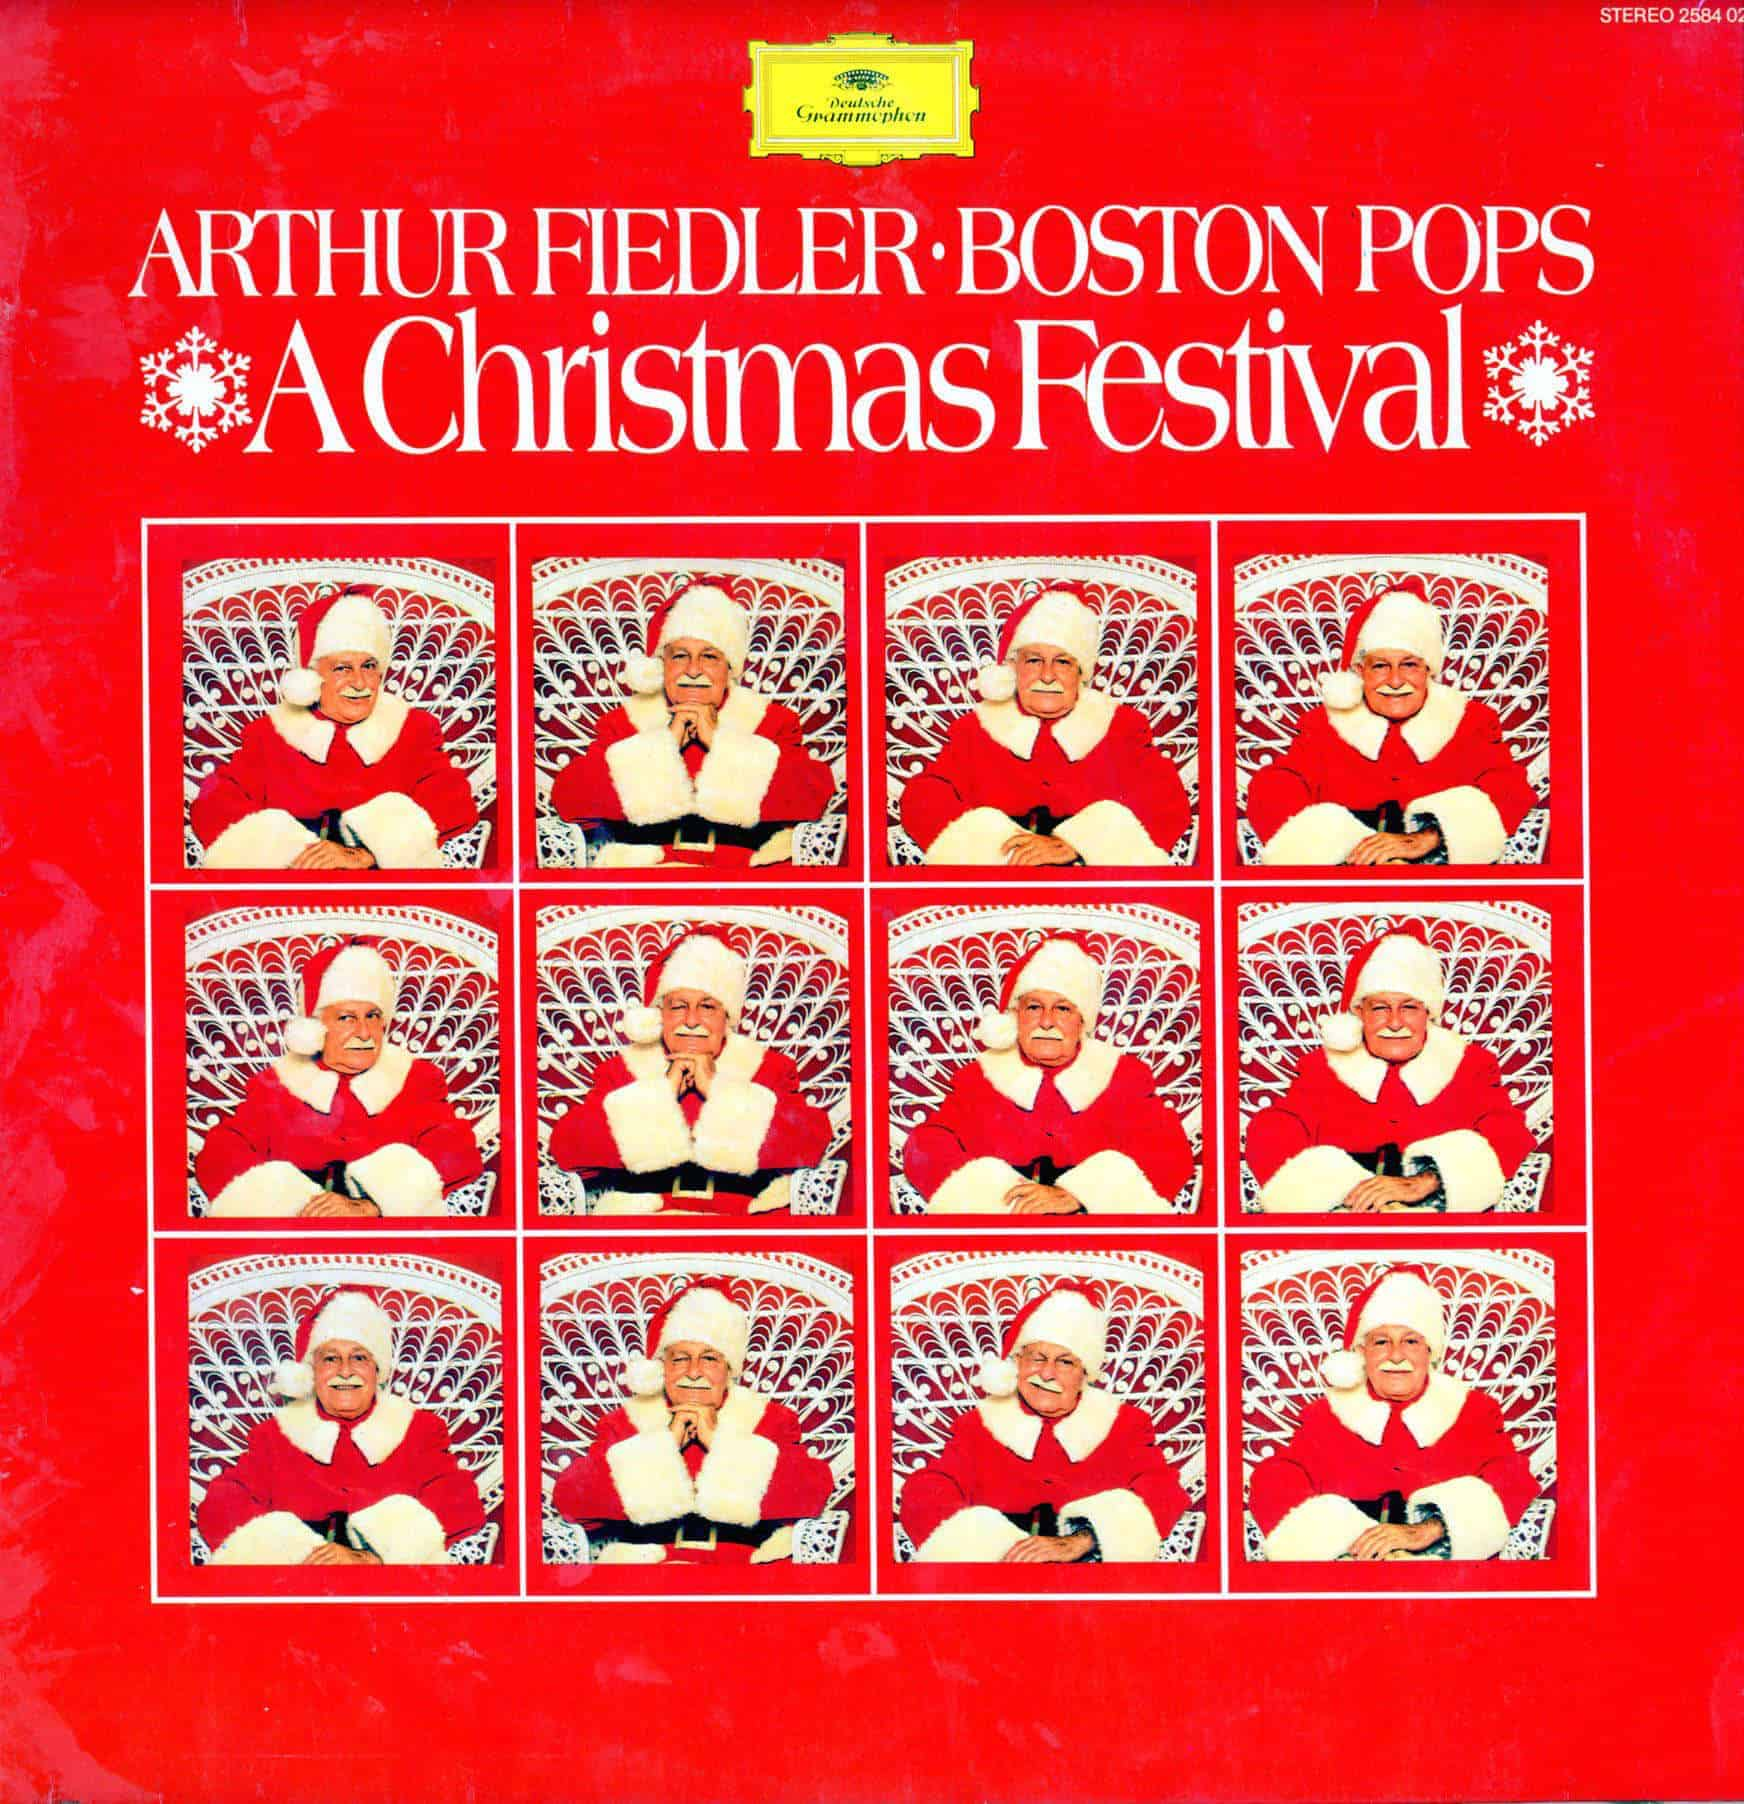 Boston Christmas Festival.Arthur Fiedler Boston Pops A Christmas Festival